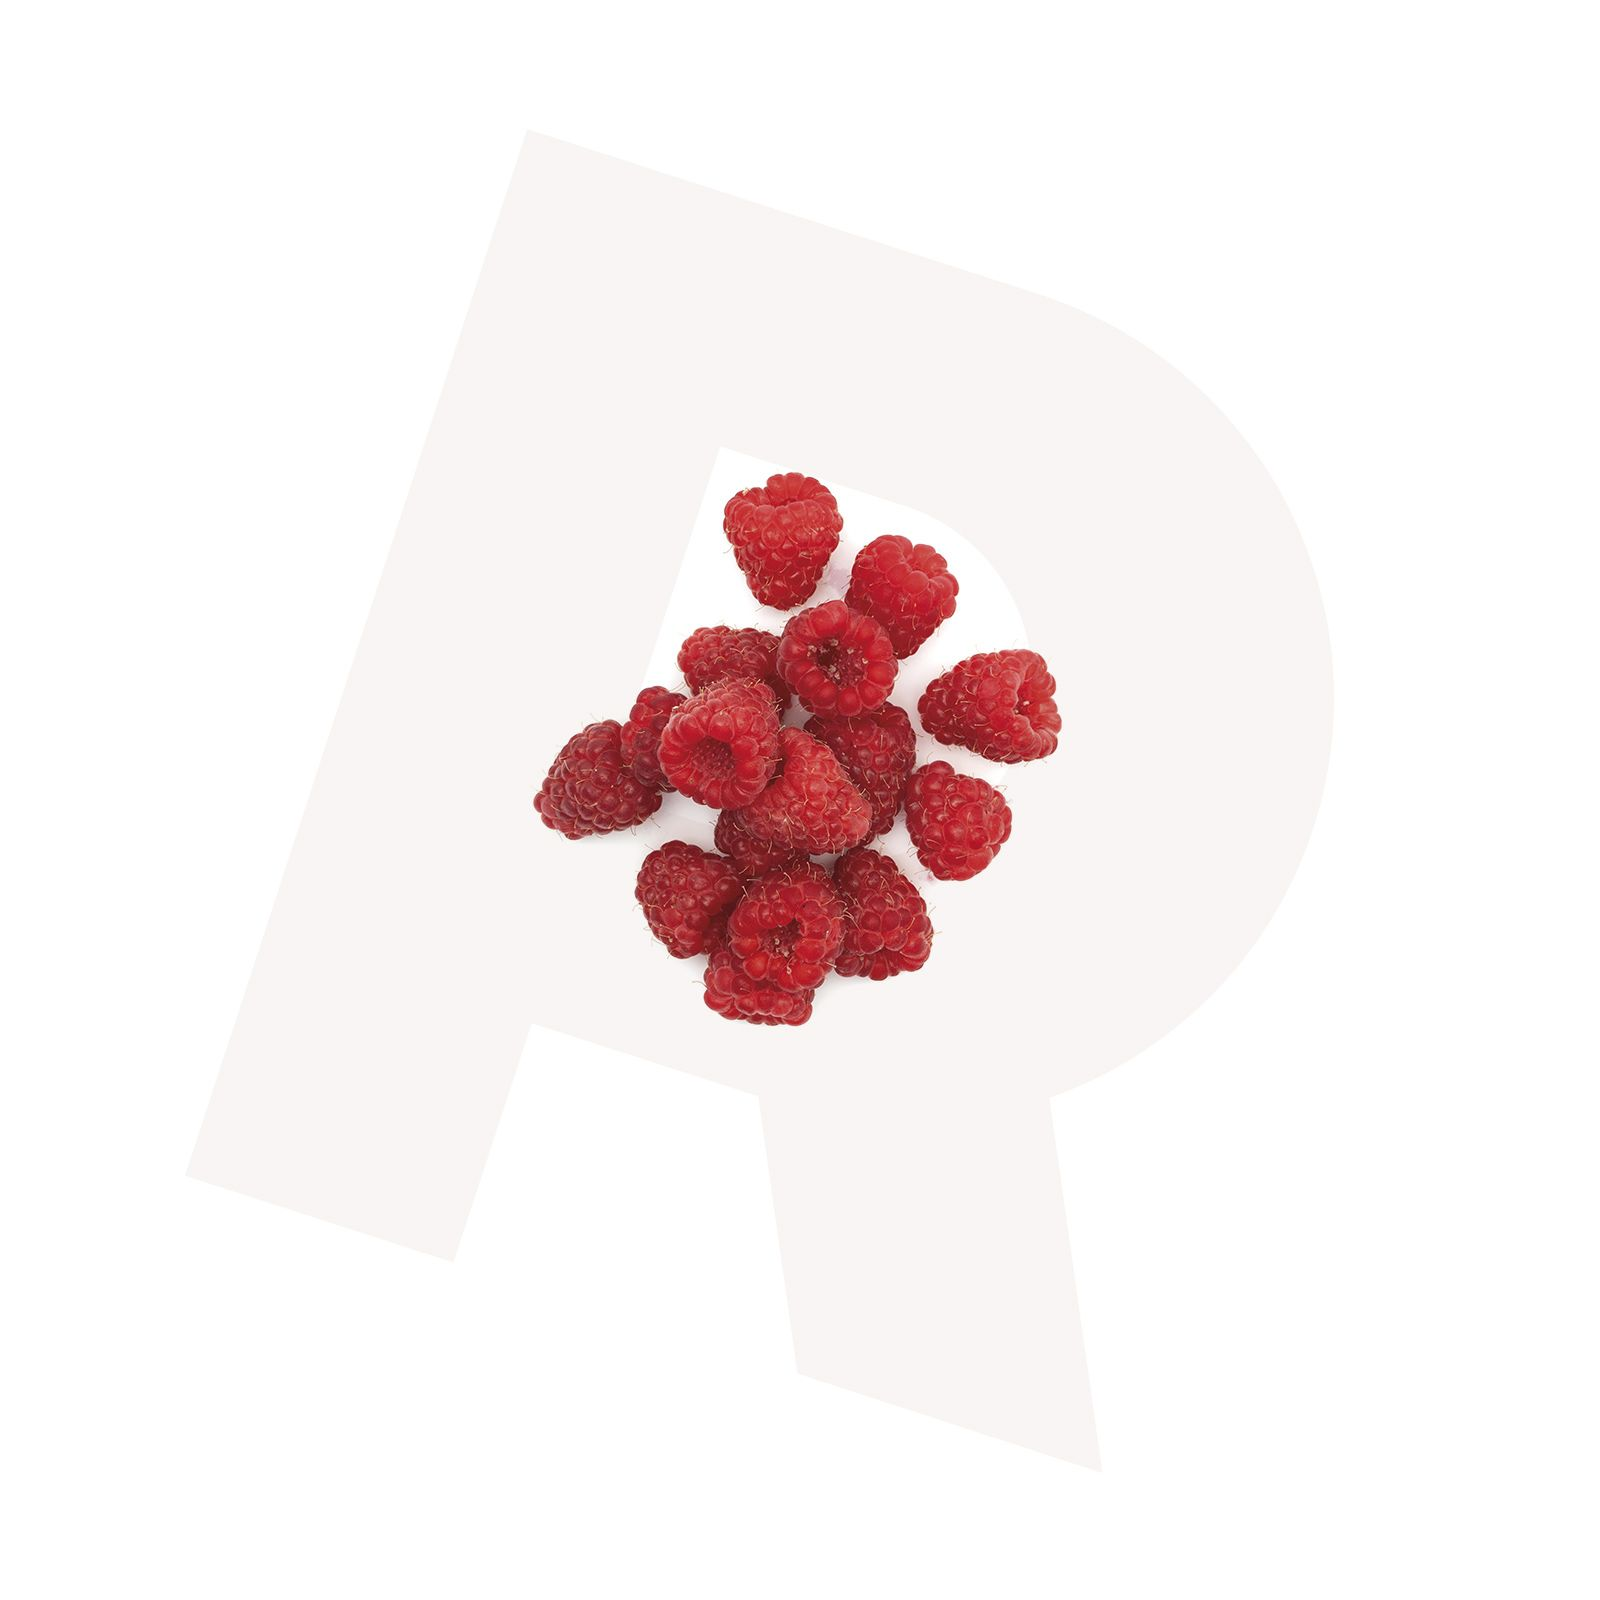 Fruit_raspberries